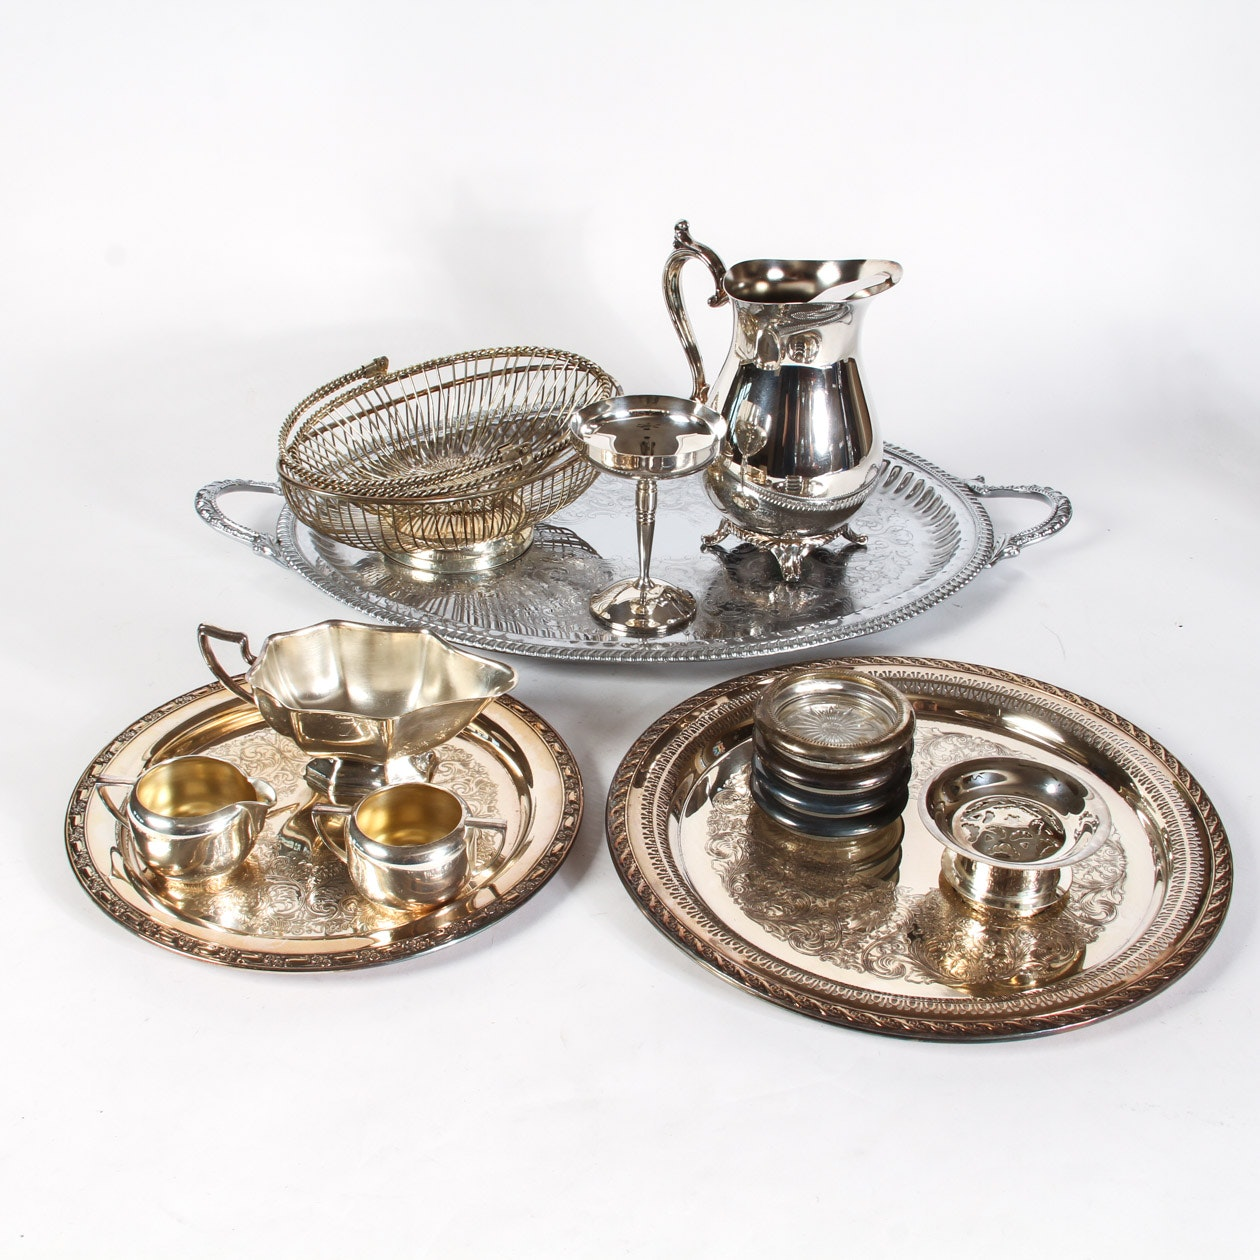 Collection of Silver Plated Dishwares